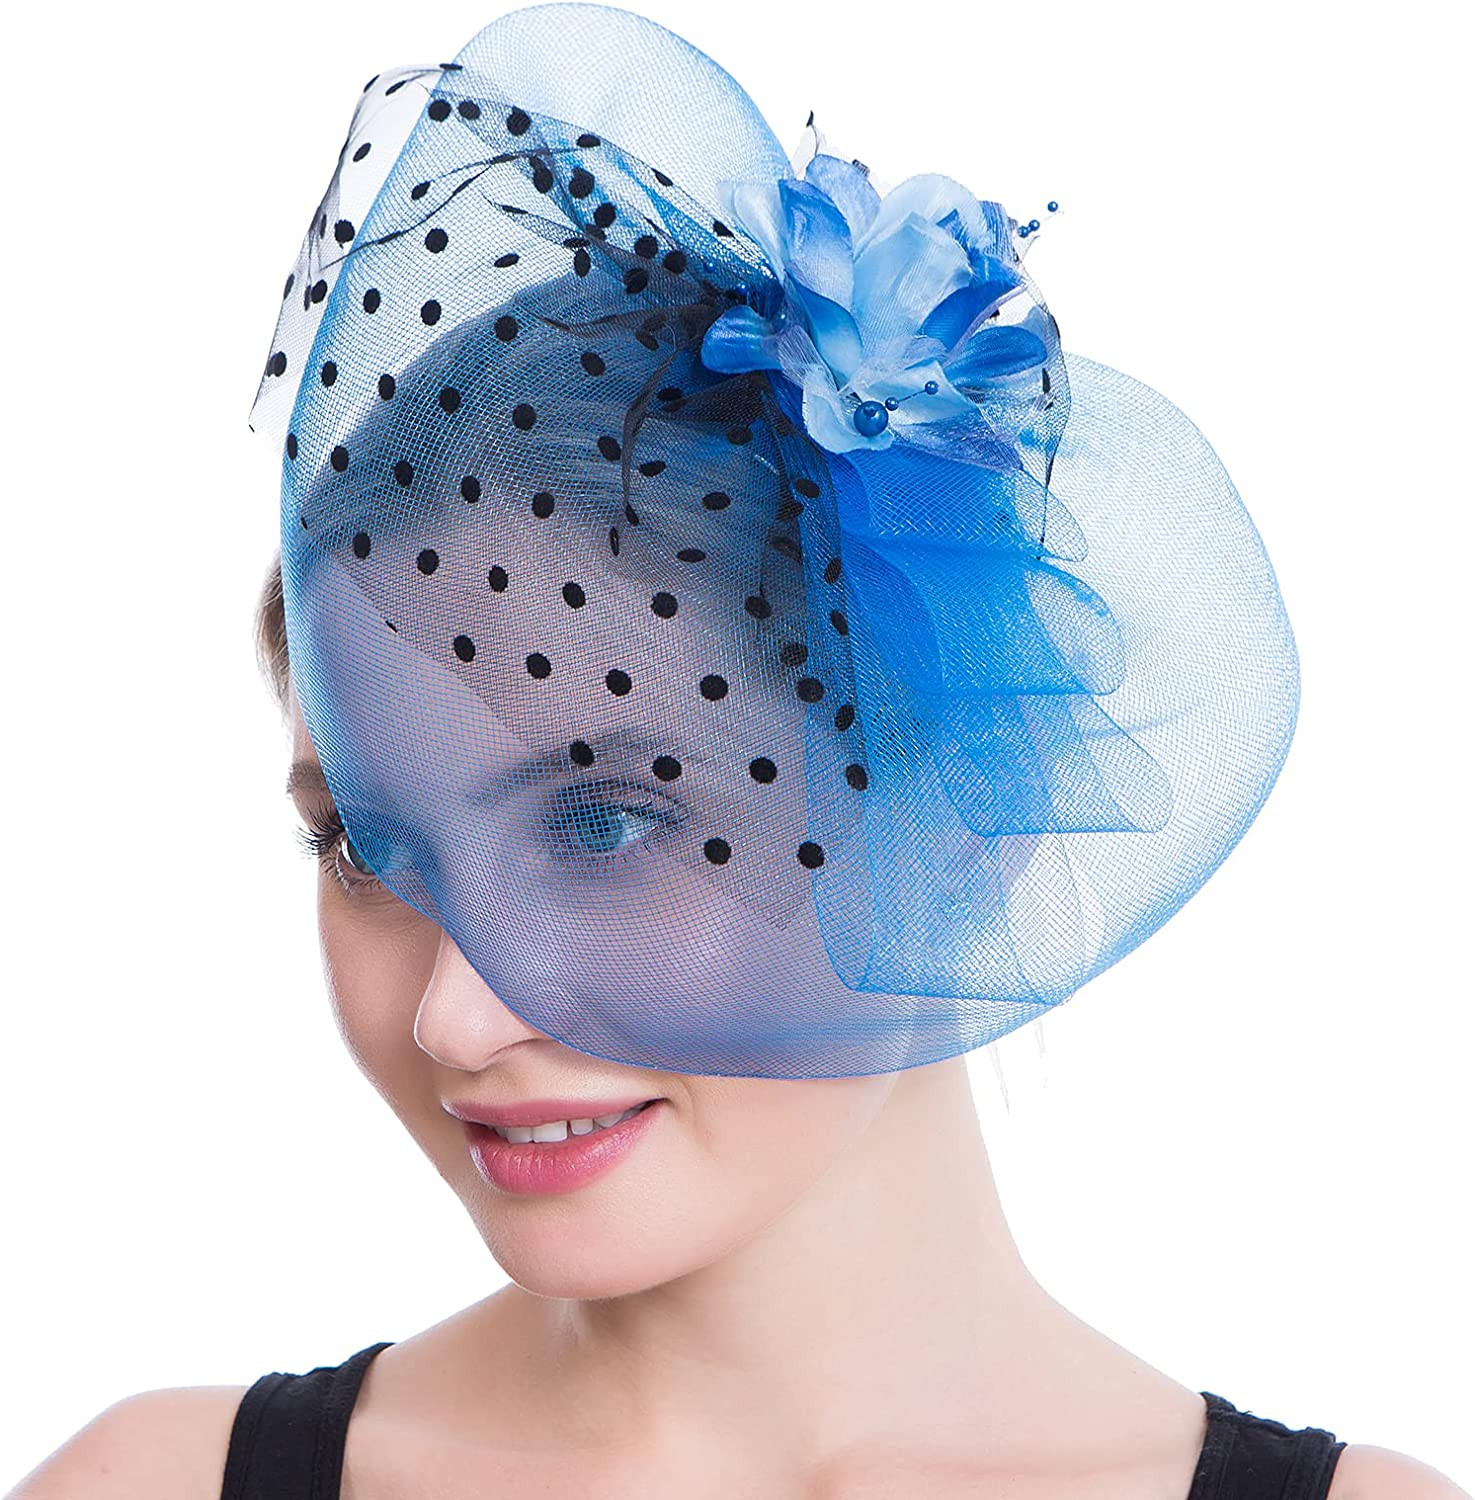 Ogteud Fascinators for Women with Hair Clip Headband, Tea Party Hats for Kentucky Derby Church Cocktail Wedding Party